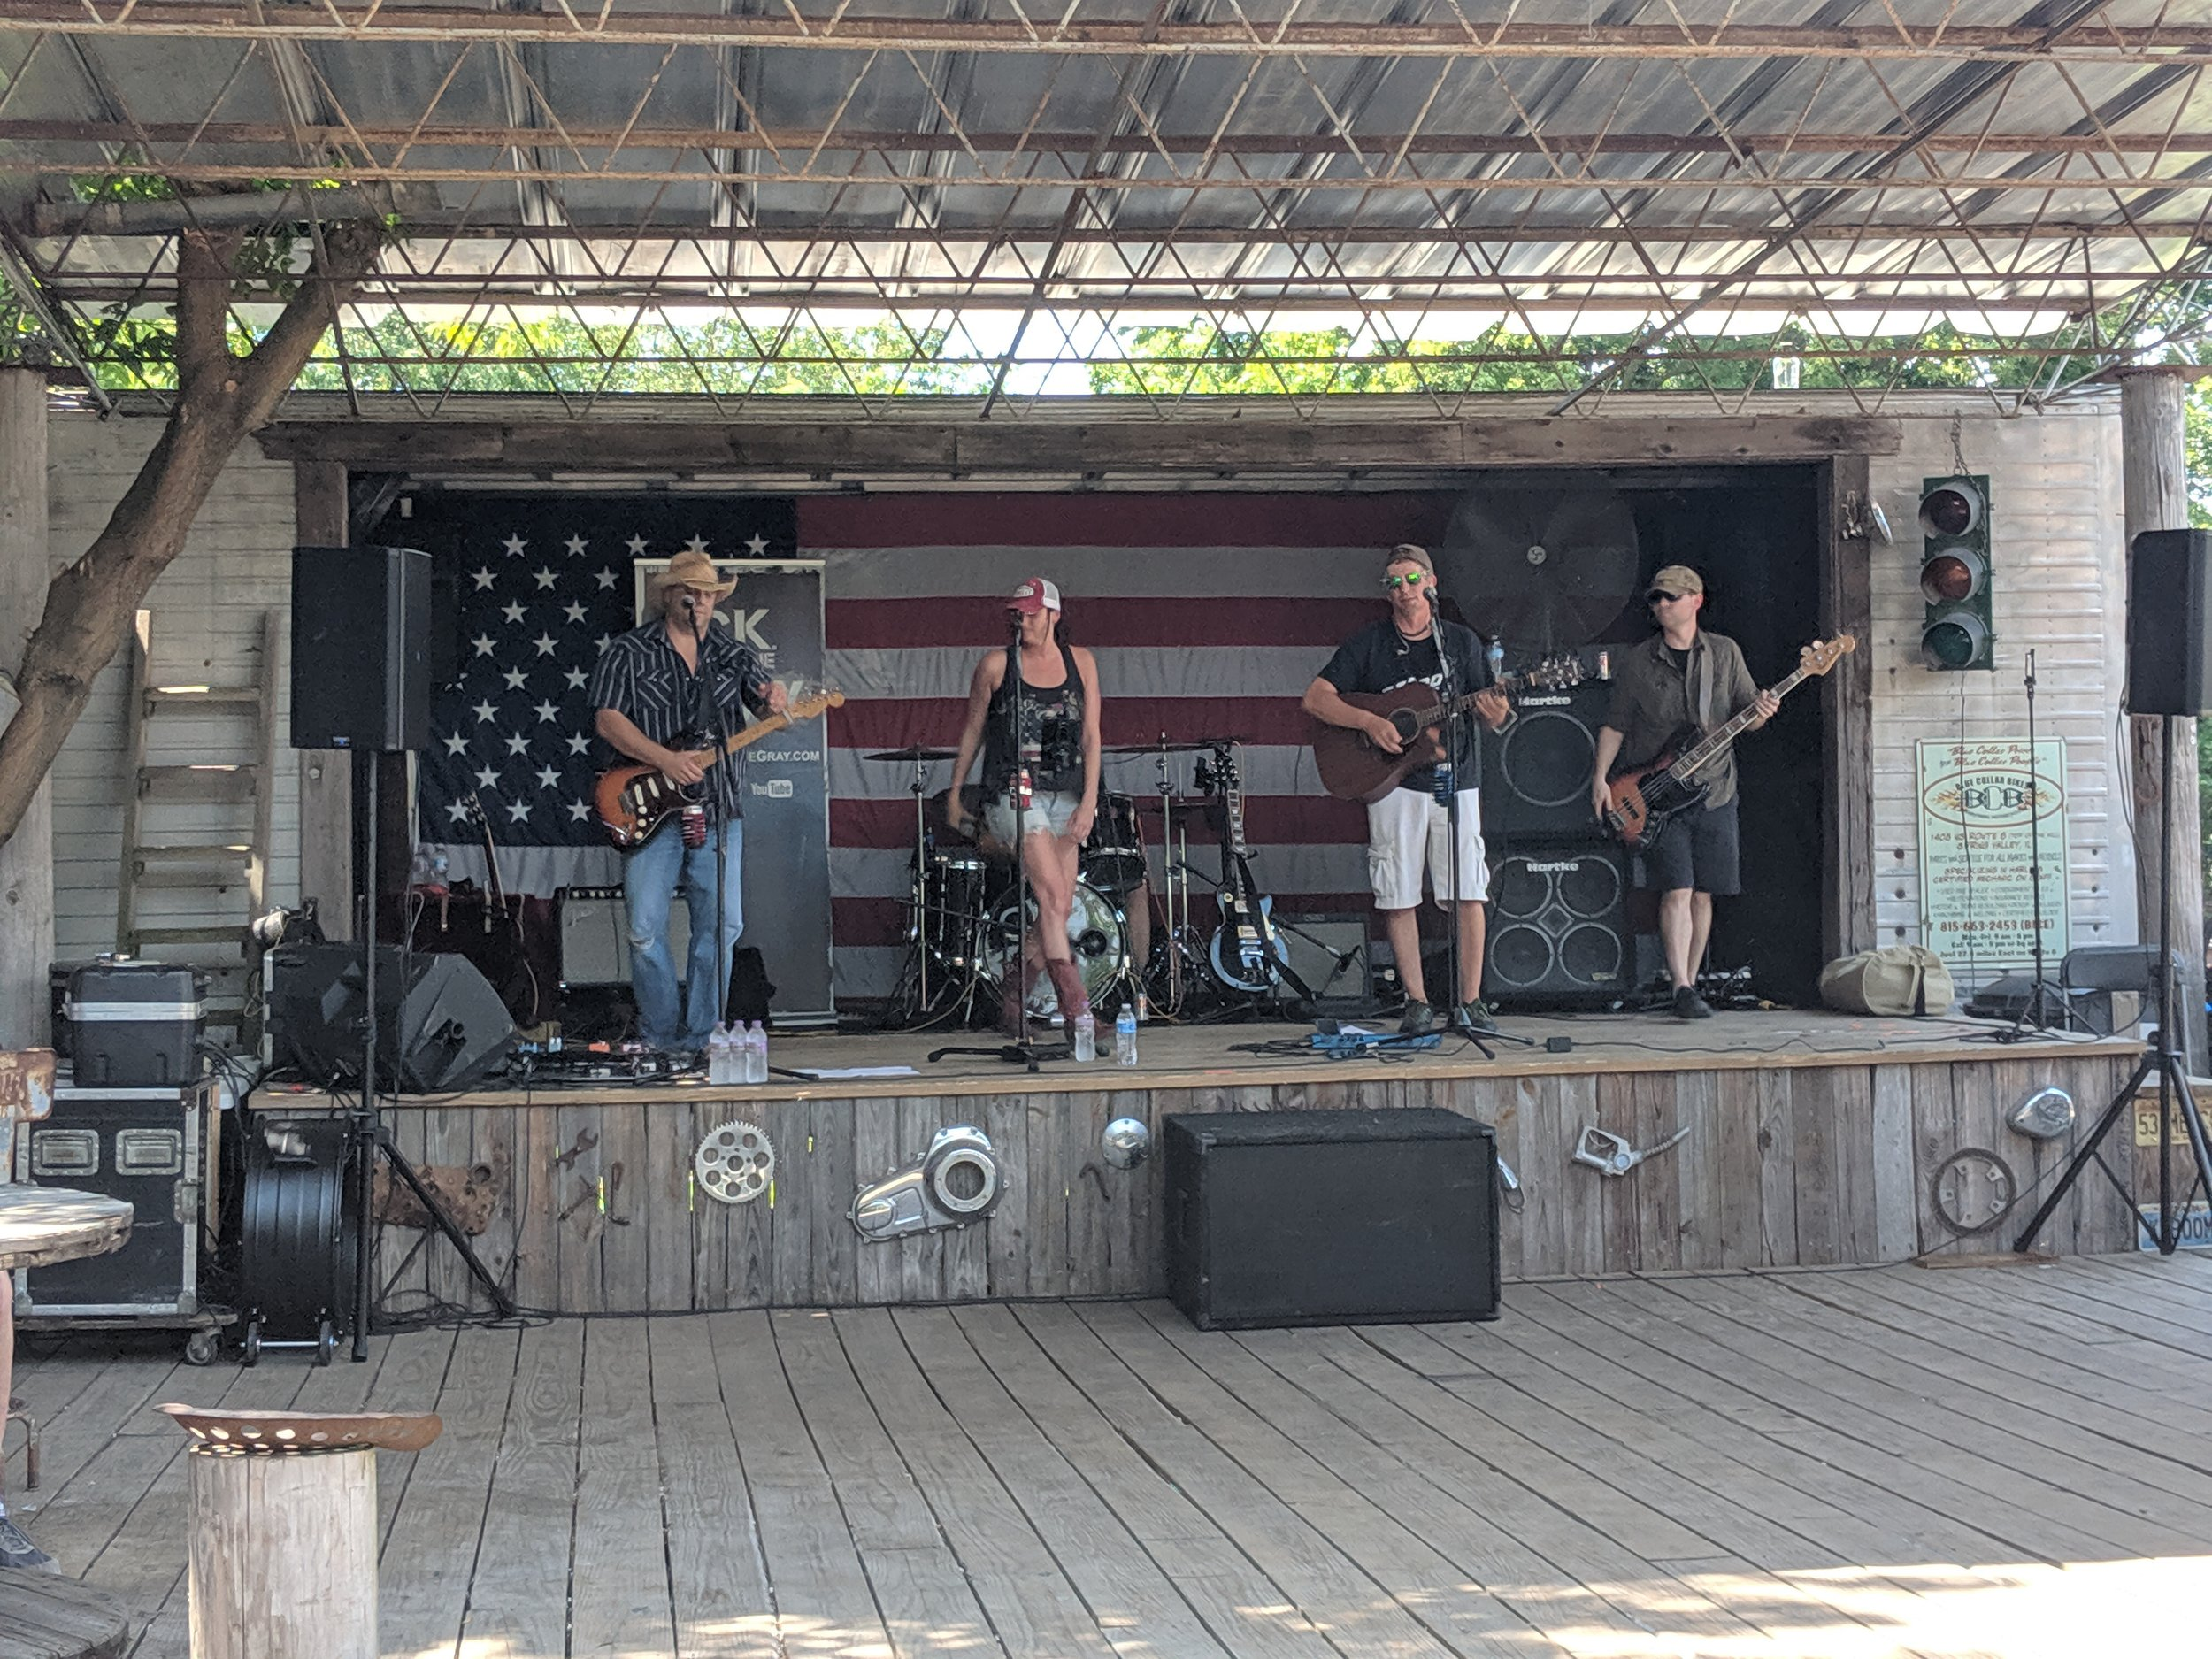 C.K. and The Gray at Psycho Silo Saloon